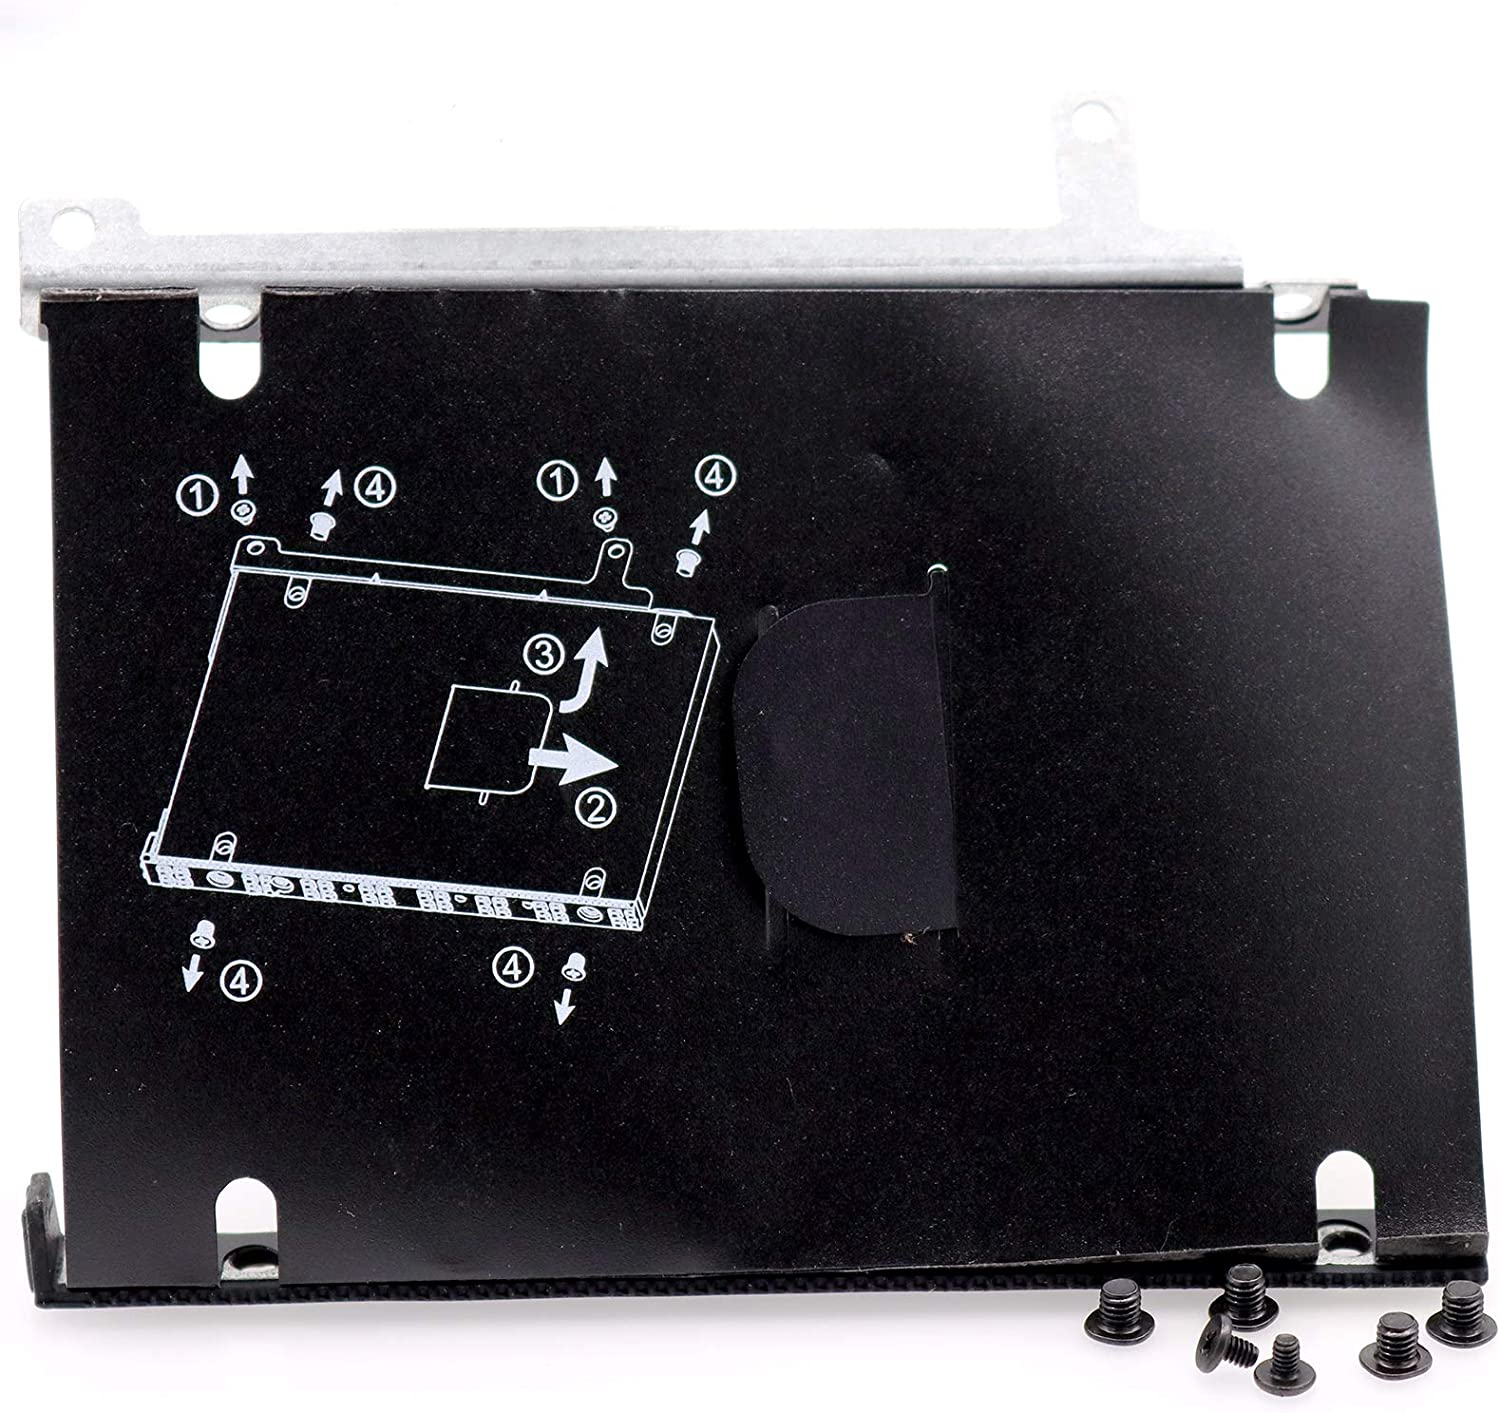 """Deal4GO 2.5"""" SSD SATA Hard Drive Caddy HDD Bracket Frame with Screw for HP ProBook 455 G5 450 G5 451 G5 456 G5 470 G5 471 G5 475 G5 L00836-001"""